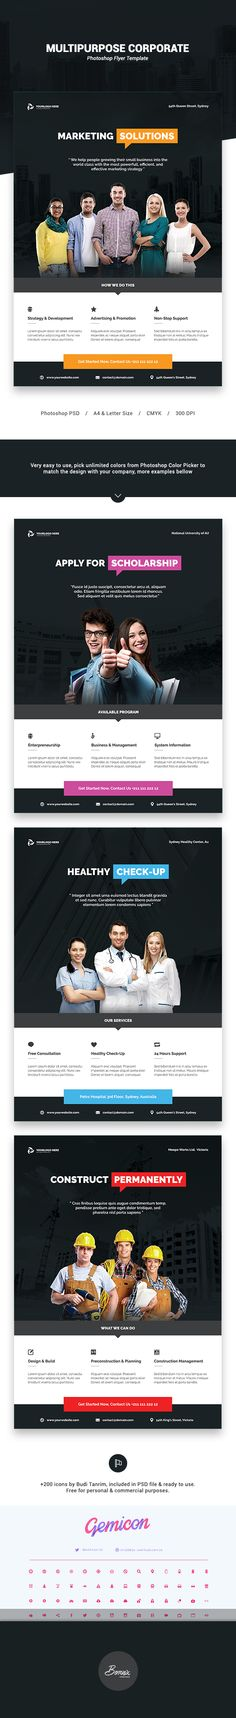 Multipurpose corporate Photoshop flyer template suitable for your company, agency, school, campus, or organization.With modern & professional design, very easy to use.You can change default flyer theme color by picking unlimited color from Photoshop Color Picker to match the design with your company/organization.Available in 2 formats, A4 & Letter with bleed in each side. #graphicriver #envato #market #creative #flyer #poster #graphic #design #print #template #editorial #layout #corporate